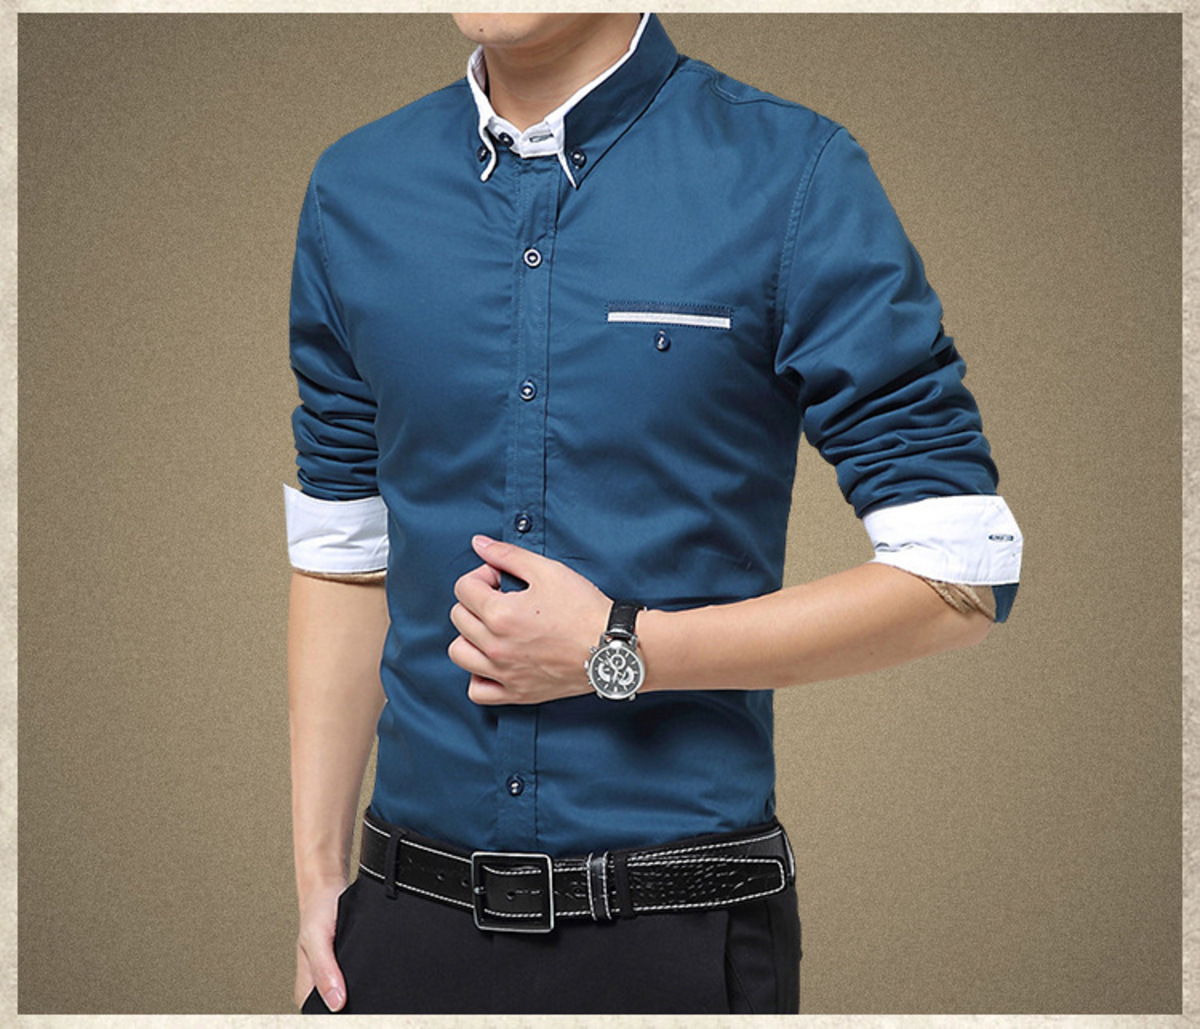 248447,Hot-Personality-Button-Brand-Dress-Slim-Fit-Designer-Casual-Men39s-Shirts-Men-White-Big-Size-M5xl-Camisa-Masculina,0